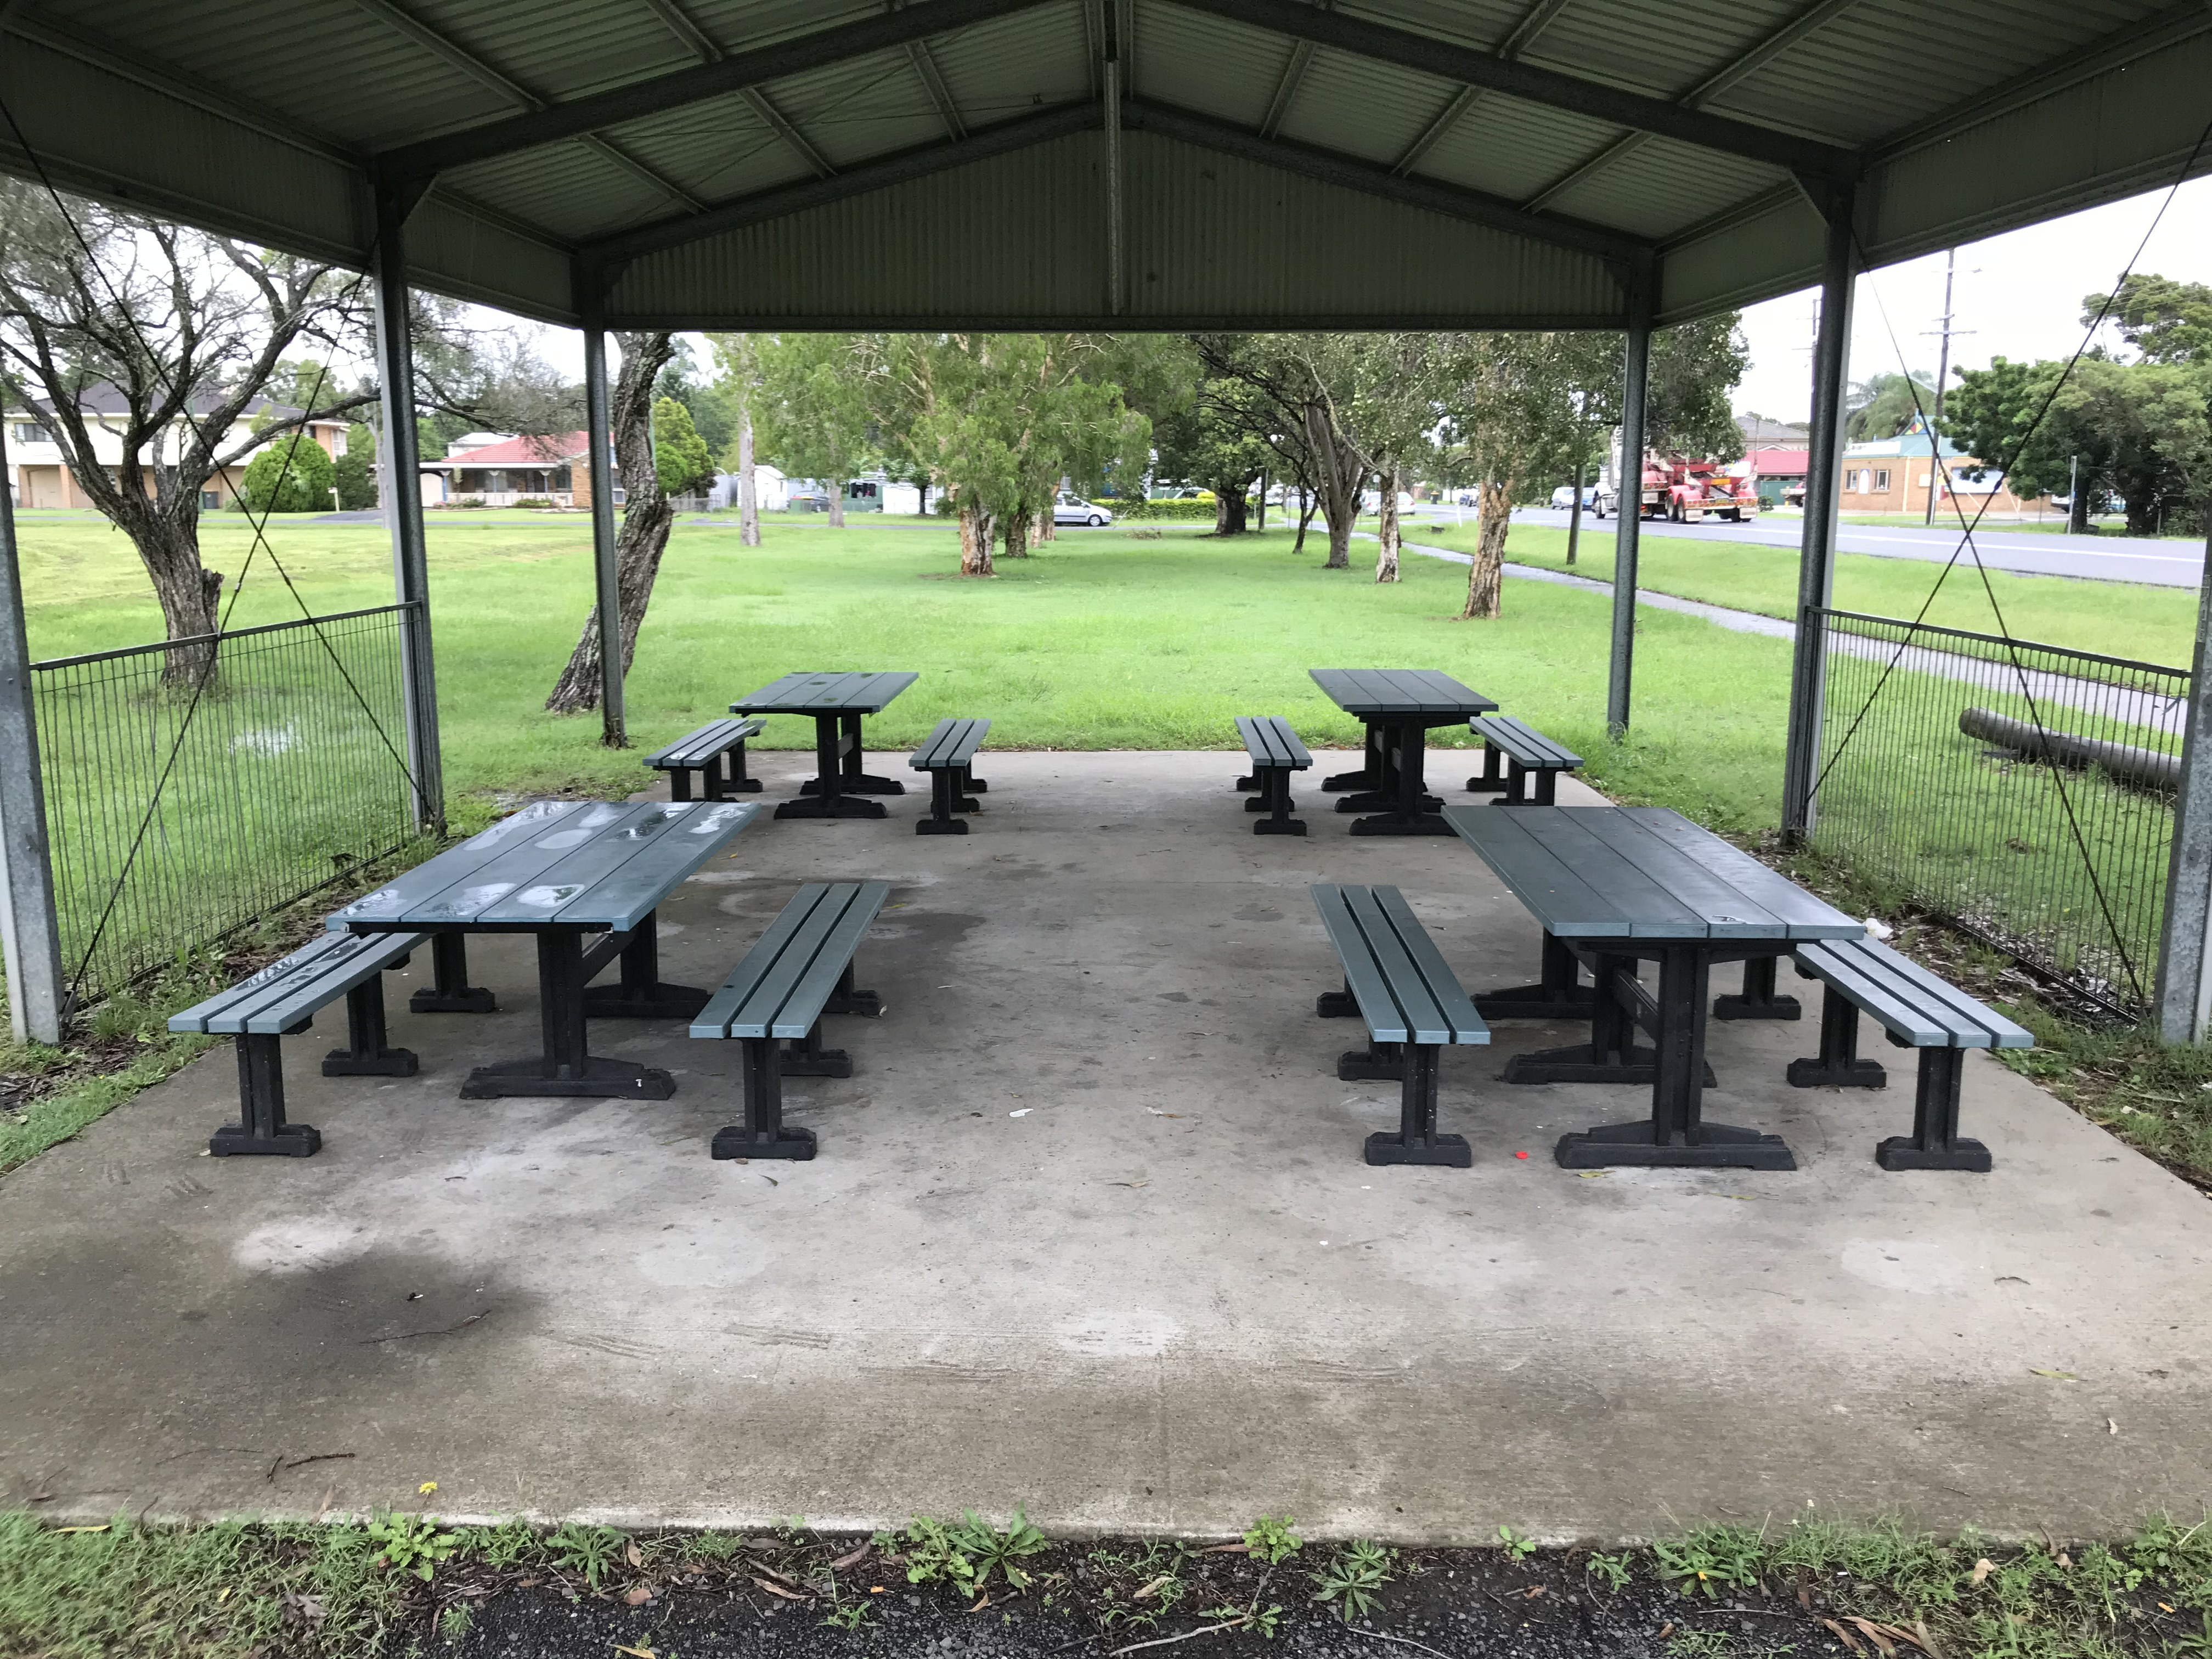 Albert parks quality products for the community